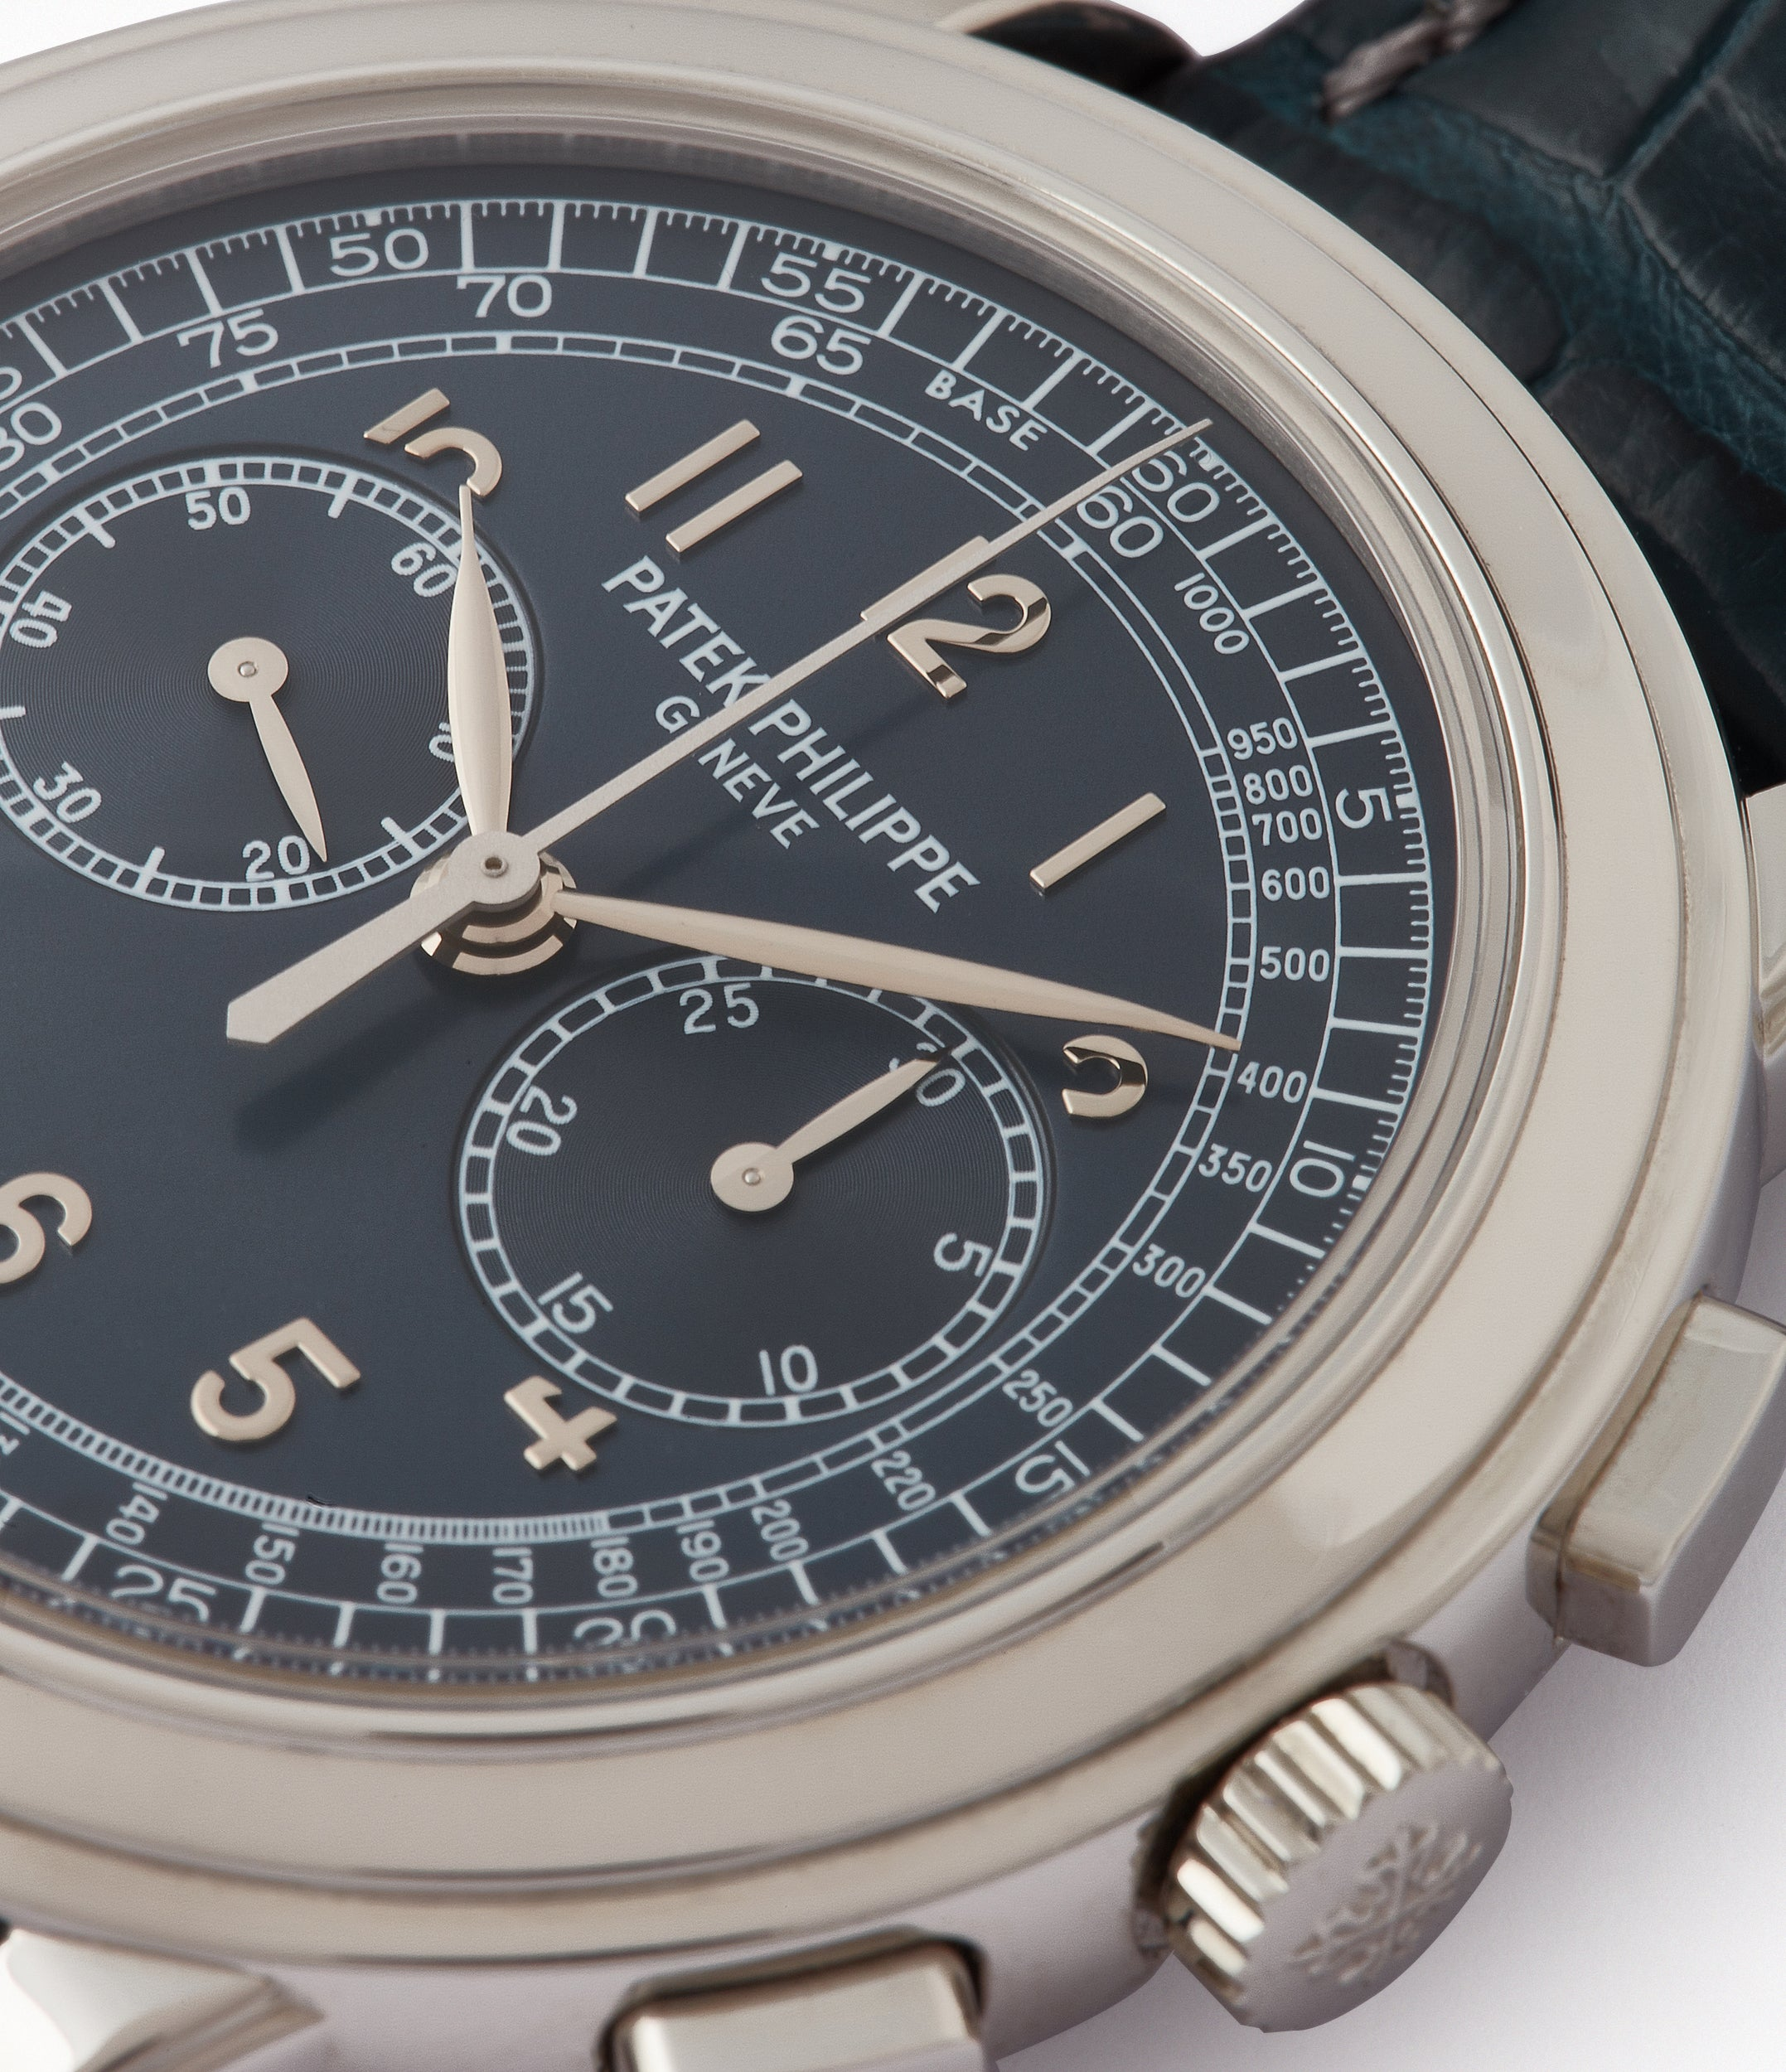 blue dial Patek Philippe 5070P Chronograph rare platinum 42mm luxury watch for sale online at A Collected Man London UK specialist of rare watches